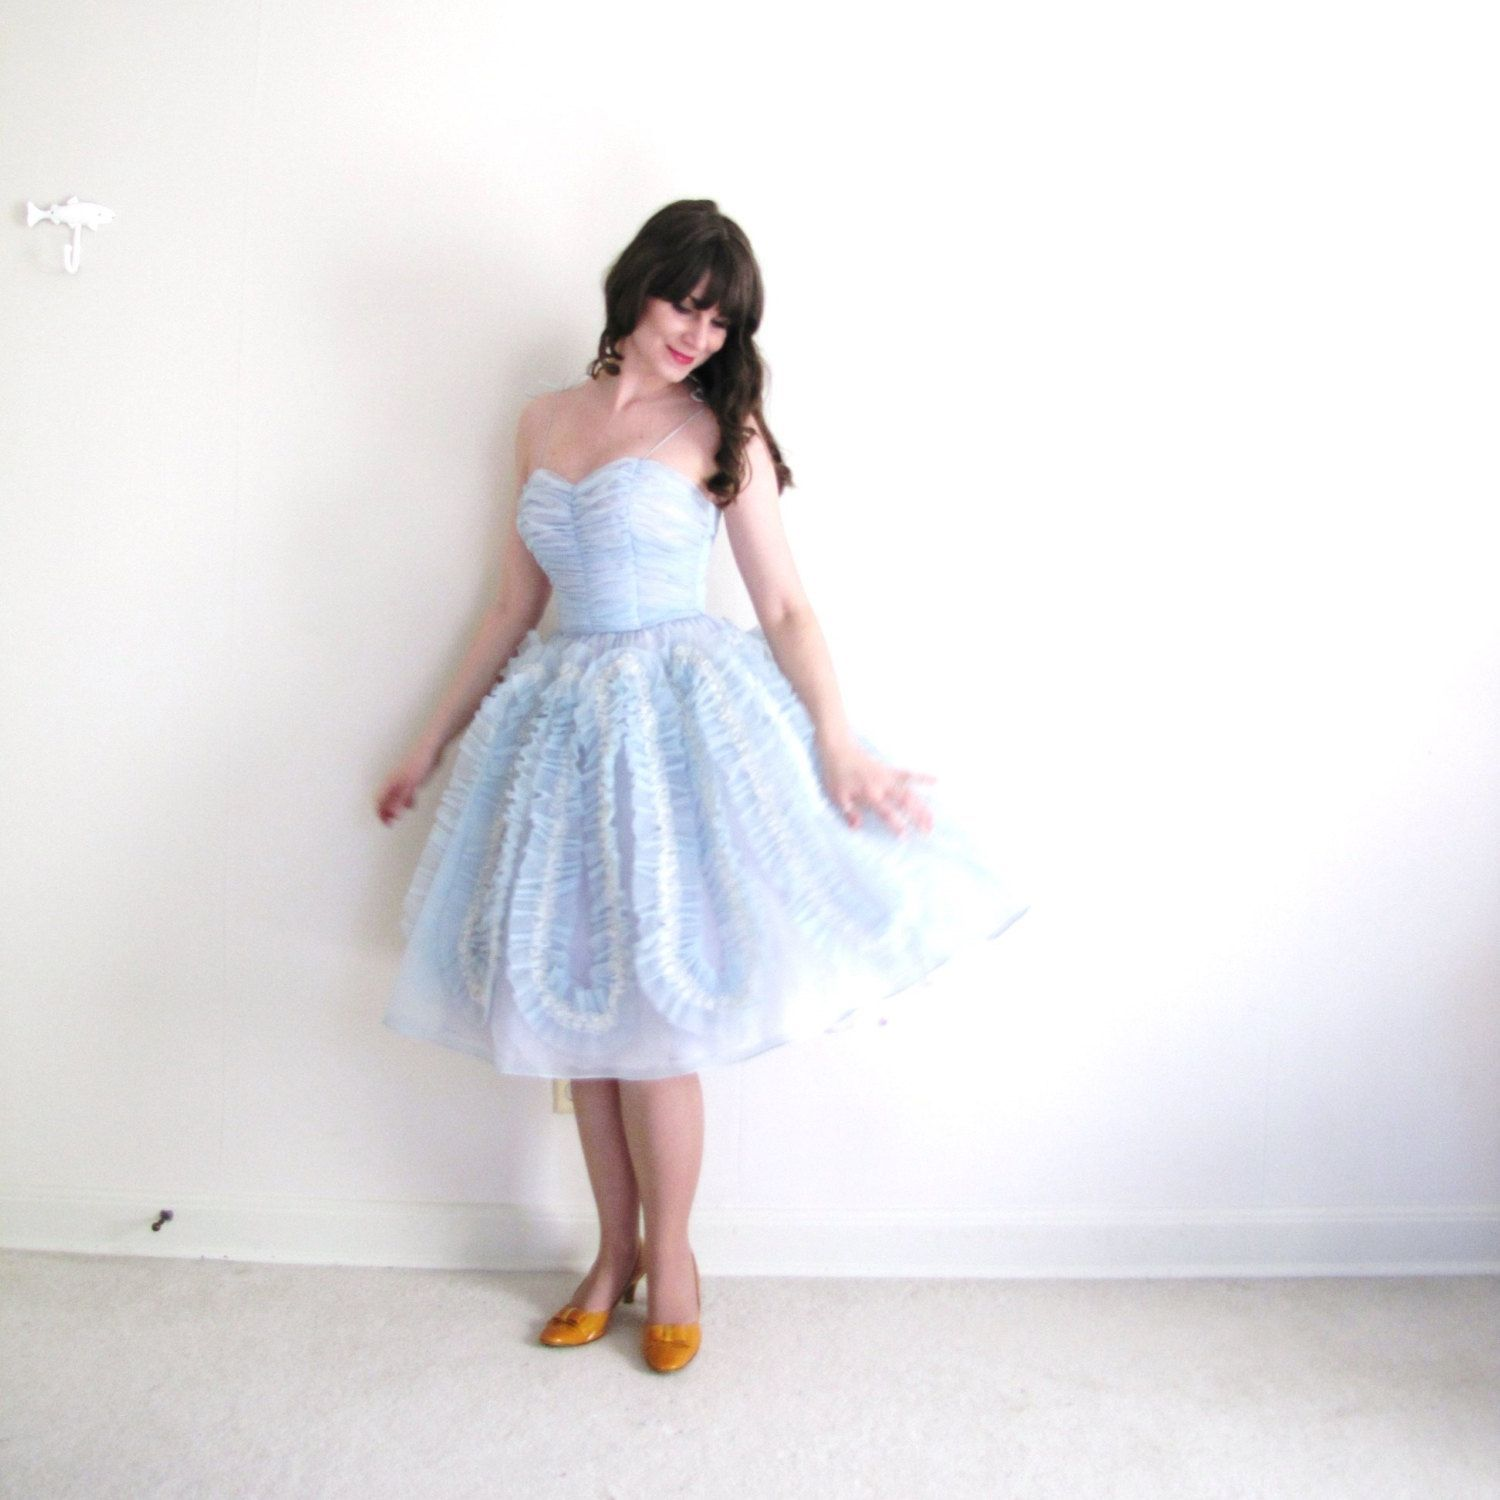 S dress s party dress s prom dress by coldfish on etsy